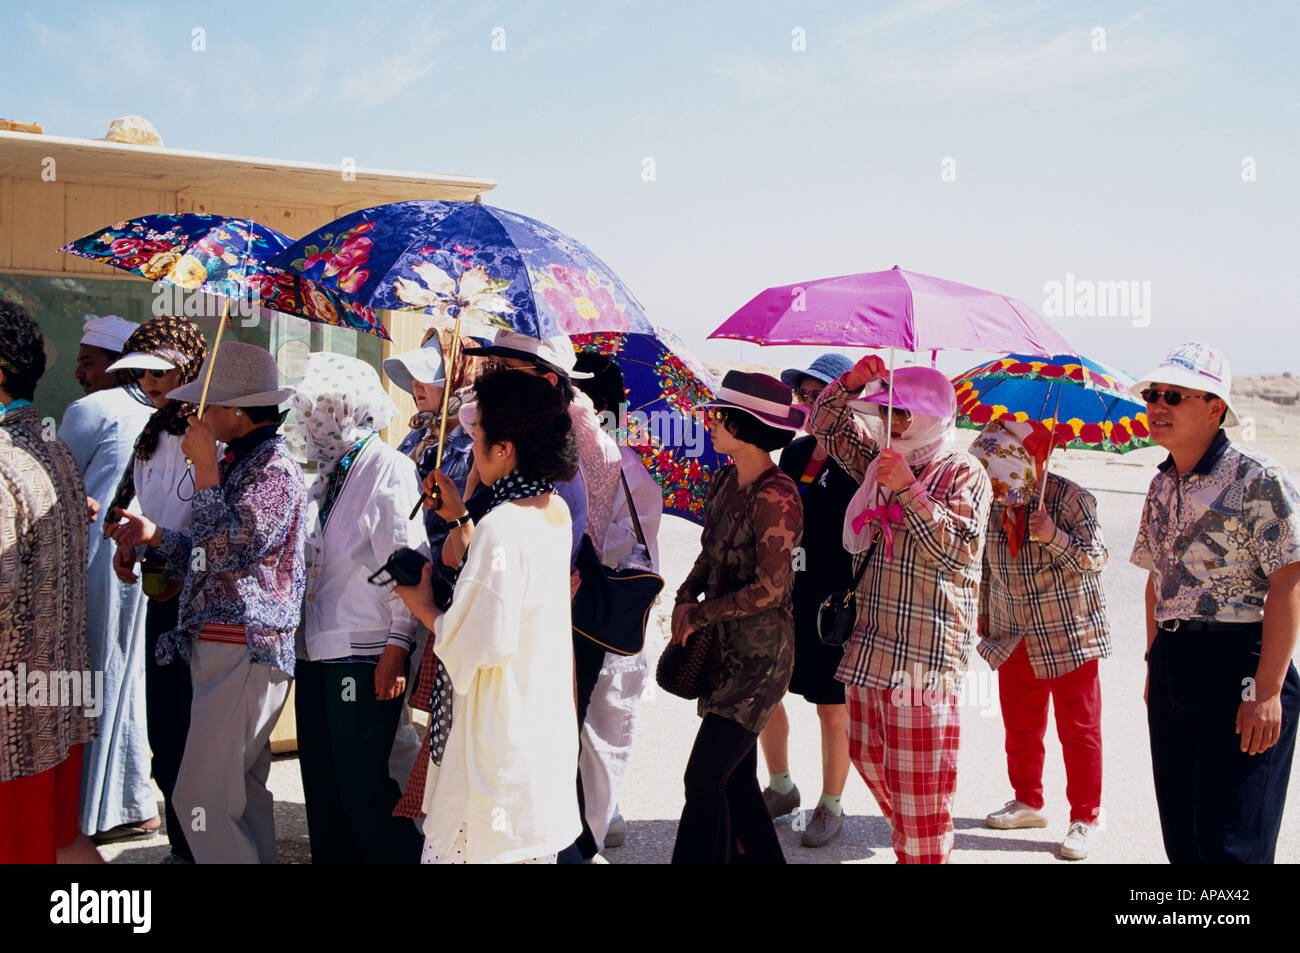 Japanese Tourists With Umbrellas The Valley Of The Kings  Egypt North Africa Stock Photo